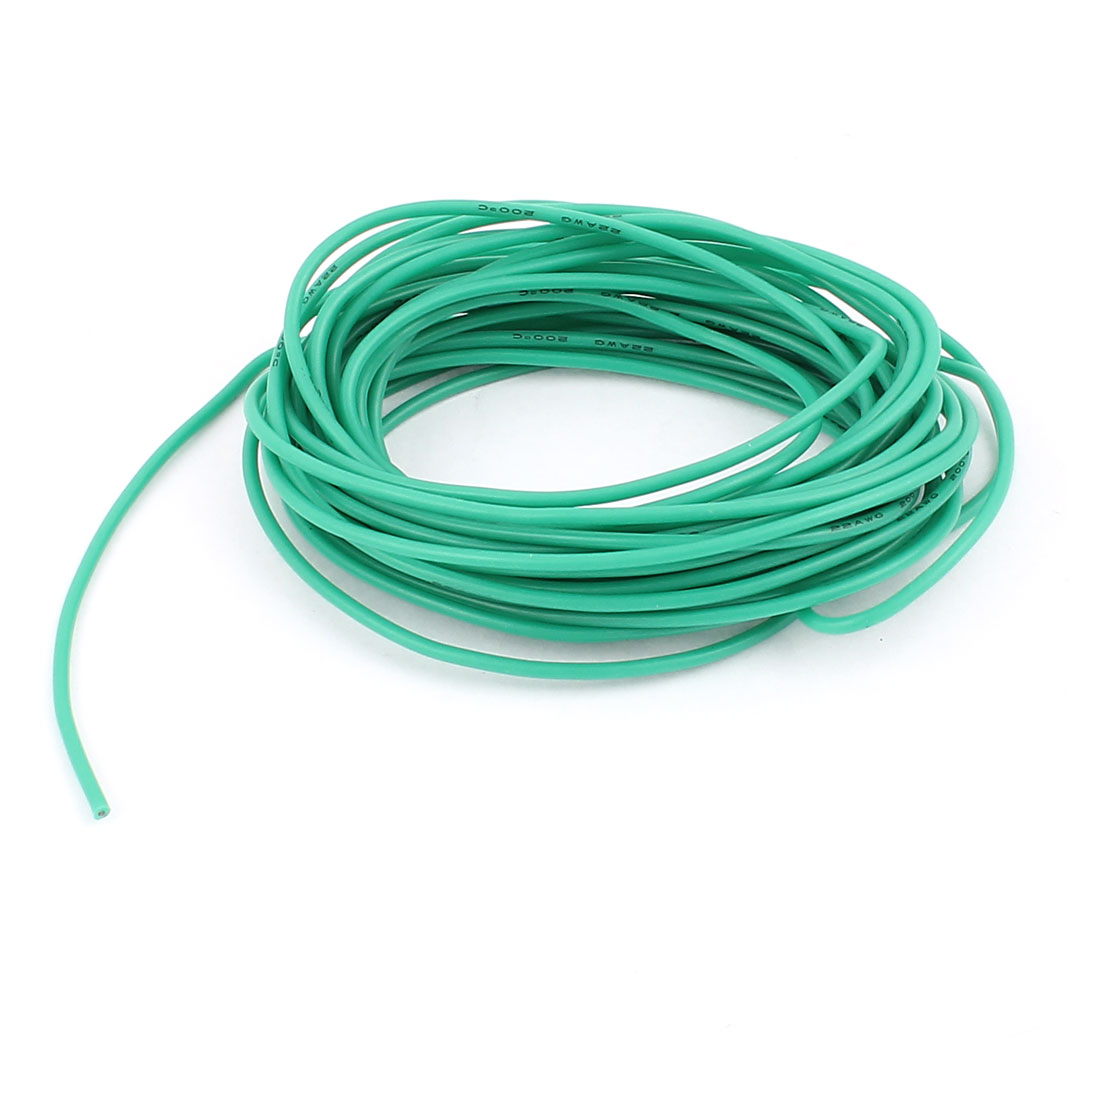 5M 22AWG Electric Copper Core Flexible Silicone Wire Cable Green